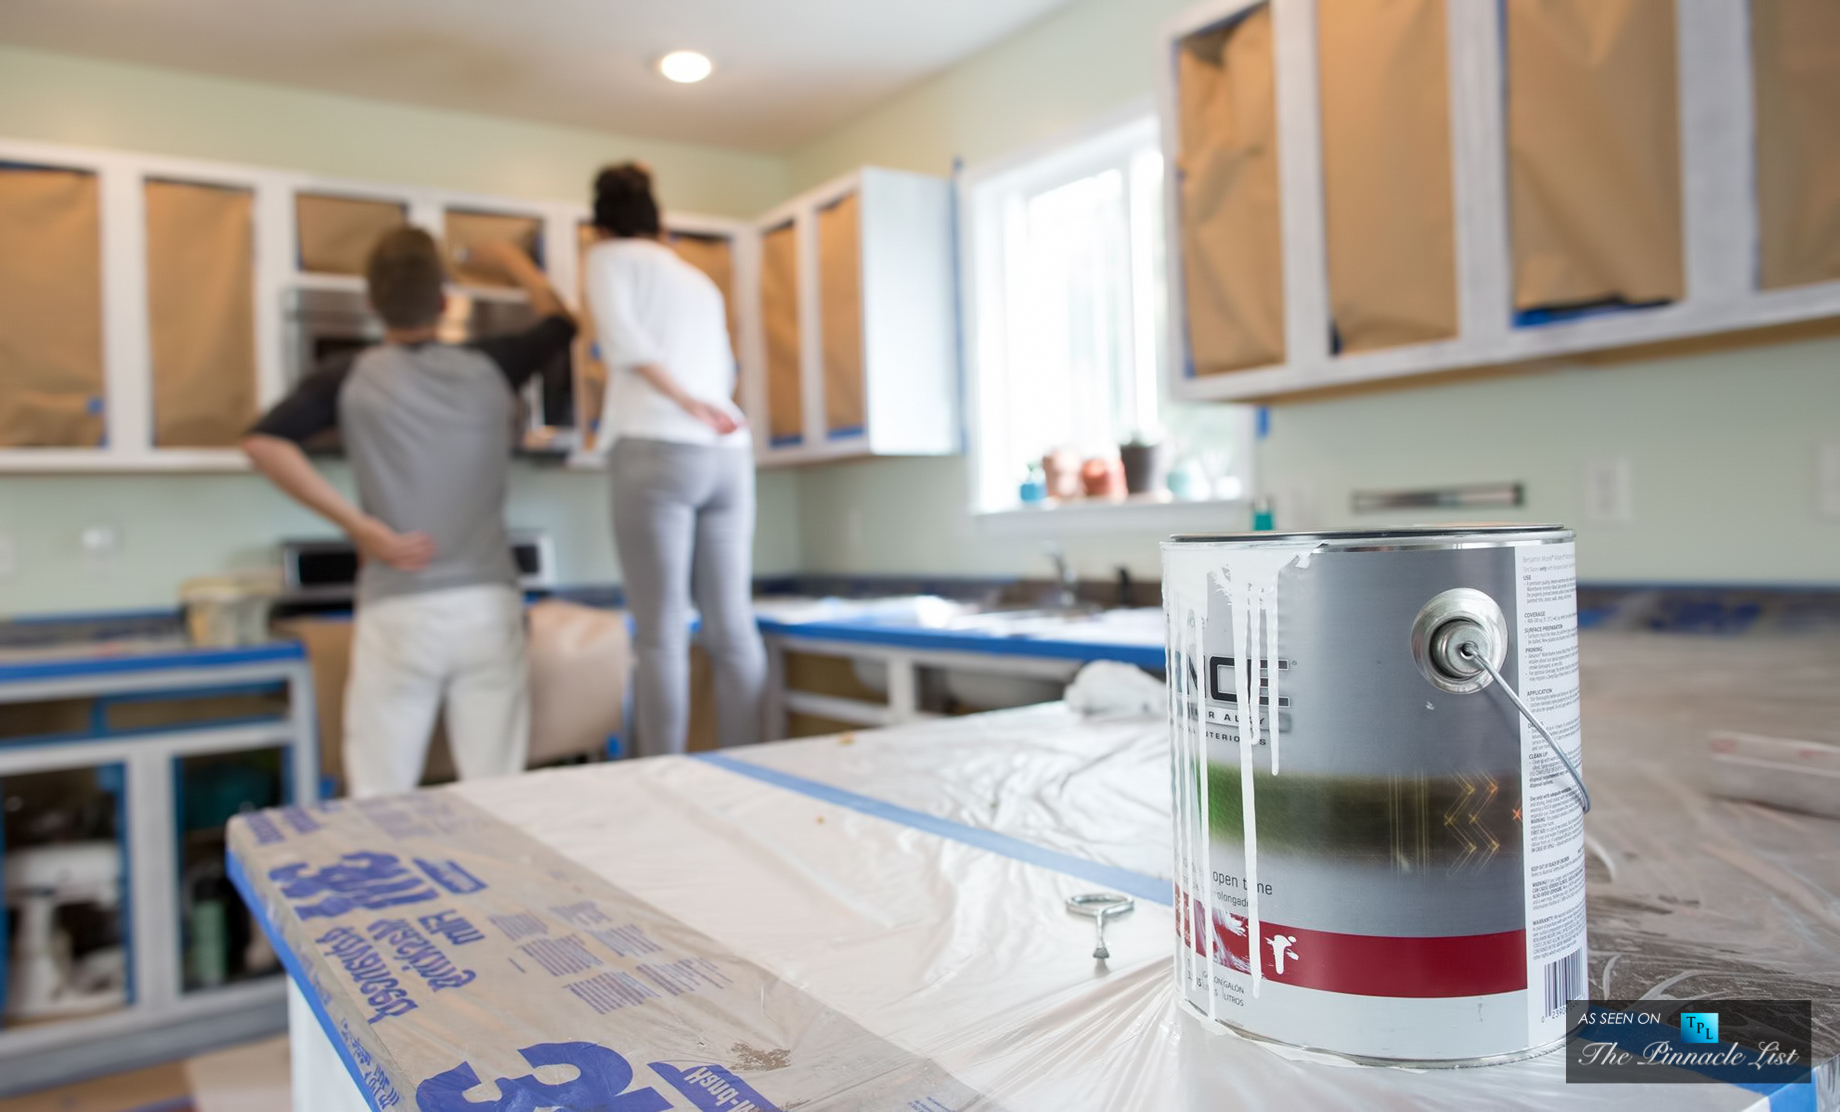 New Paint - Home Design and Decor - 5 Tips for Creating a Beautiful Kitchen Space